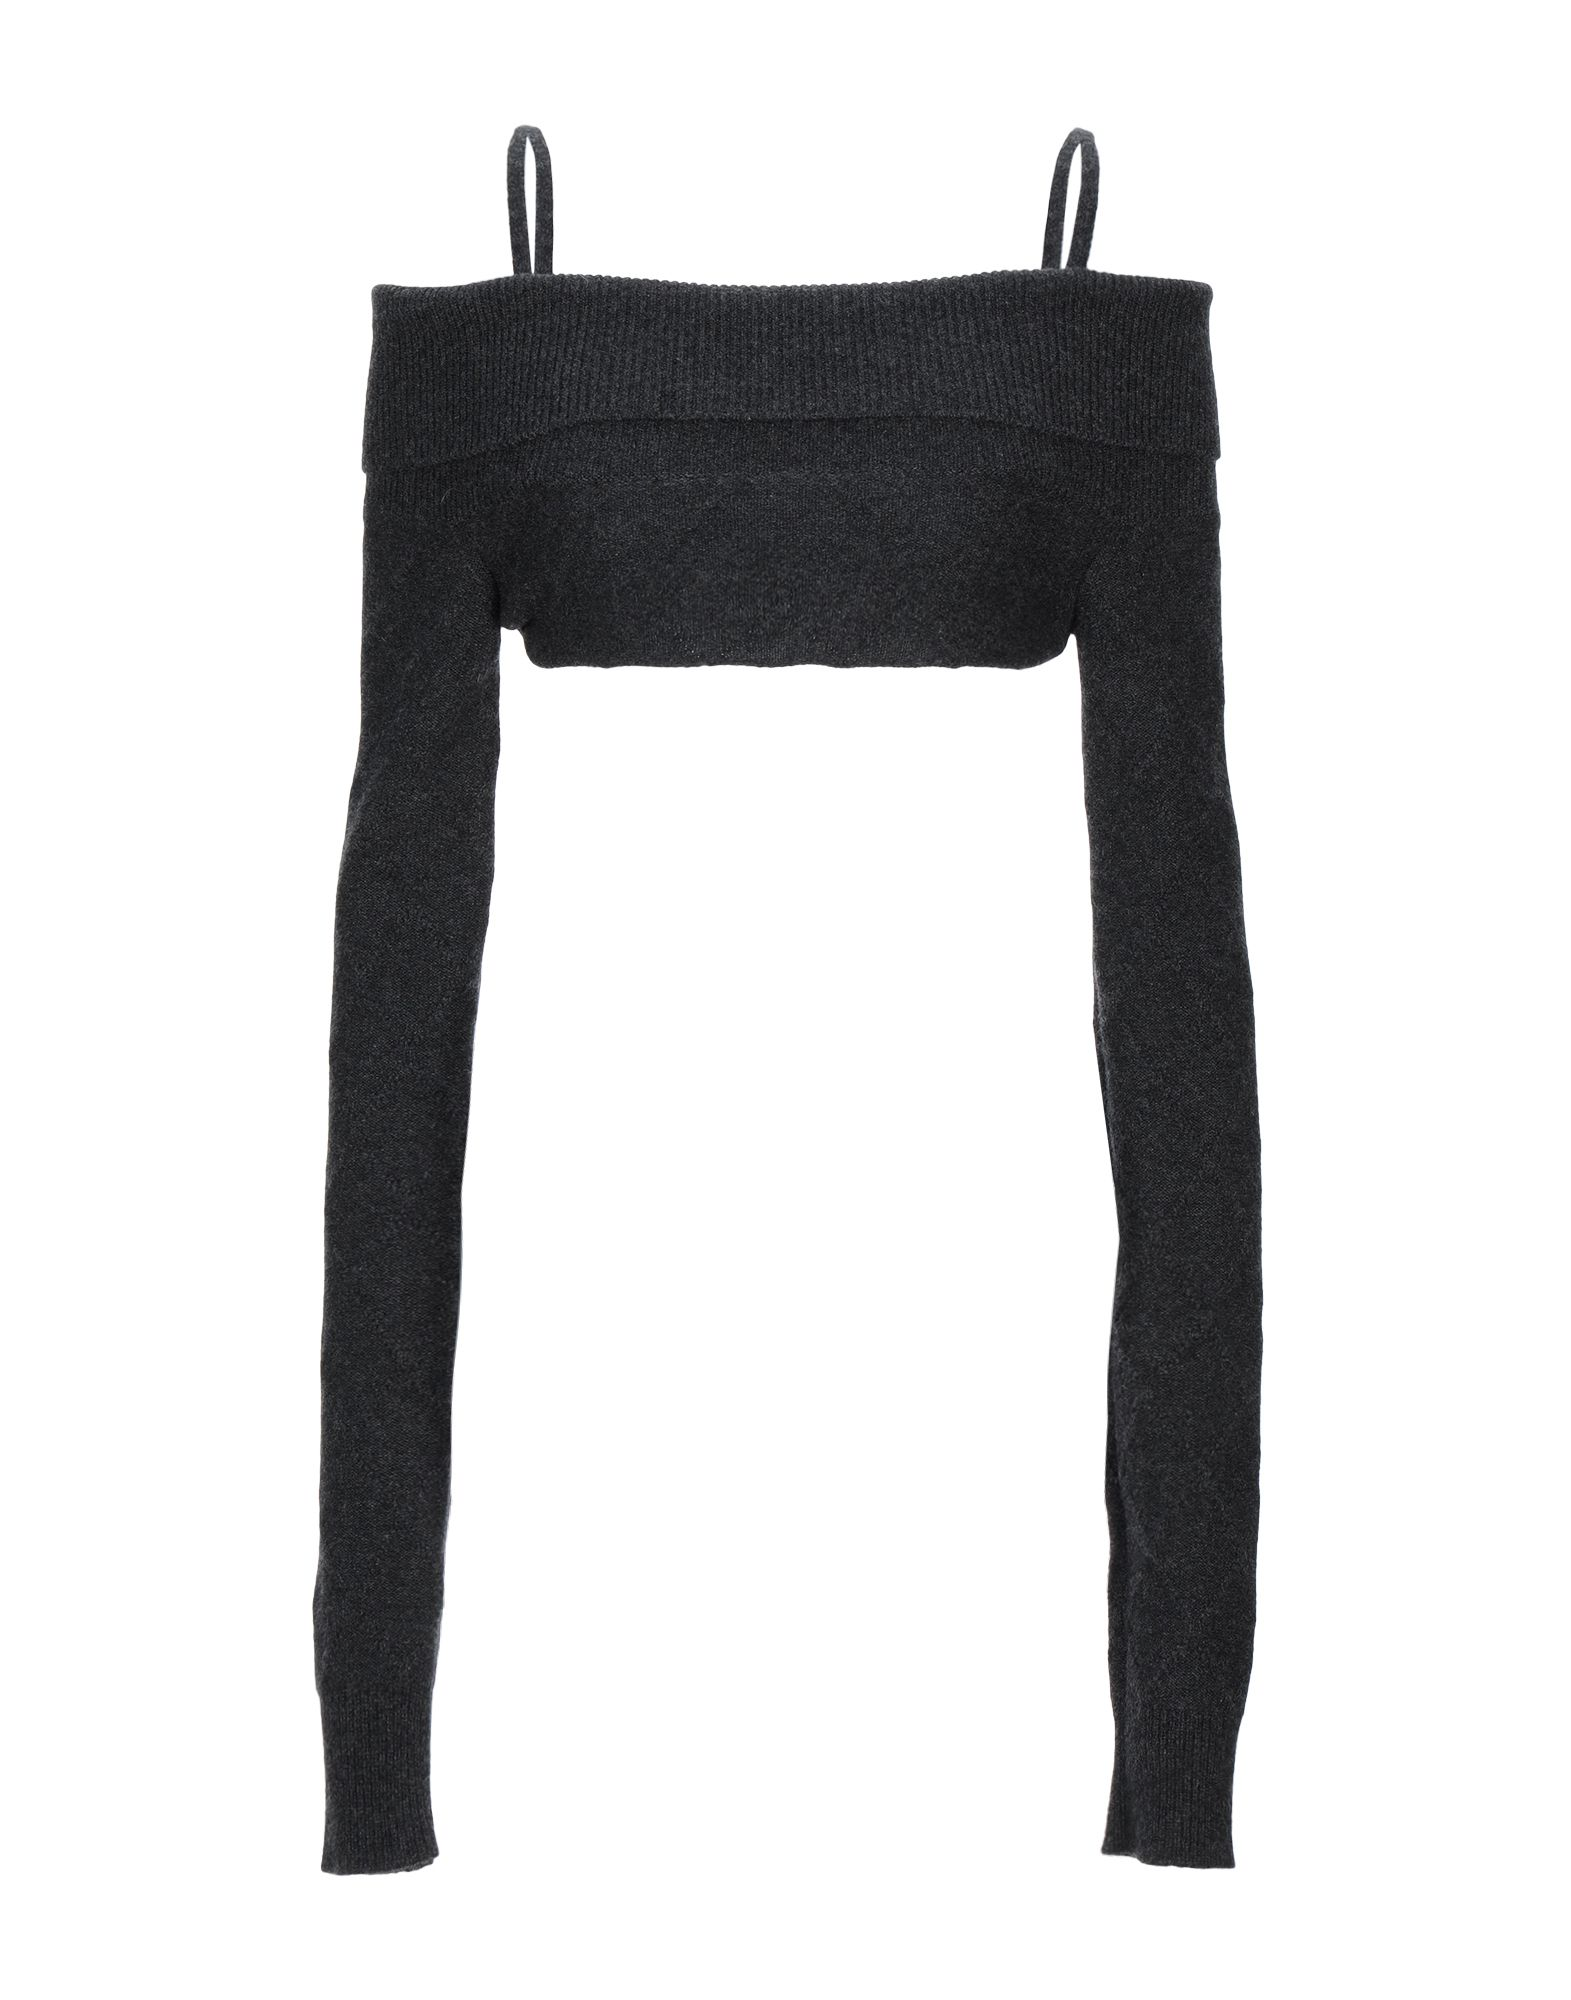 MAISON MARGIELA Shrugs. knitted, laces, lightweight knit, basic solid color, wide neckline, long sleeves, no pockets. 100% Cashmere